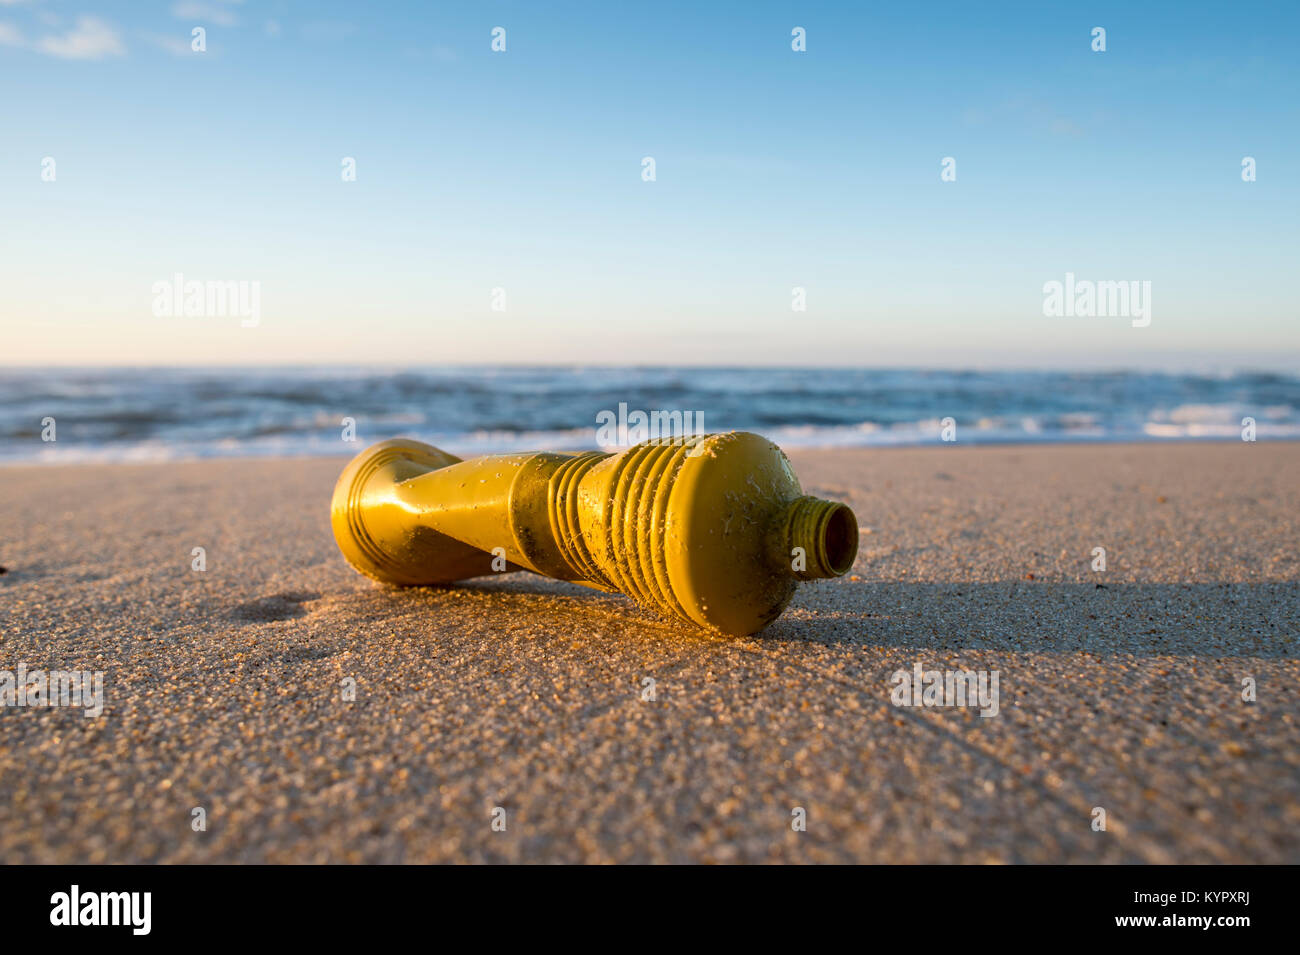 yellow plastic bottle washed up on a deserted beach, Ocean pollution with non-recyclable plastic. - Stock Image